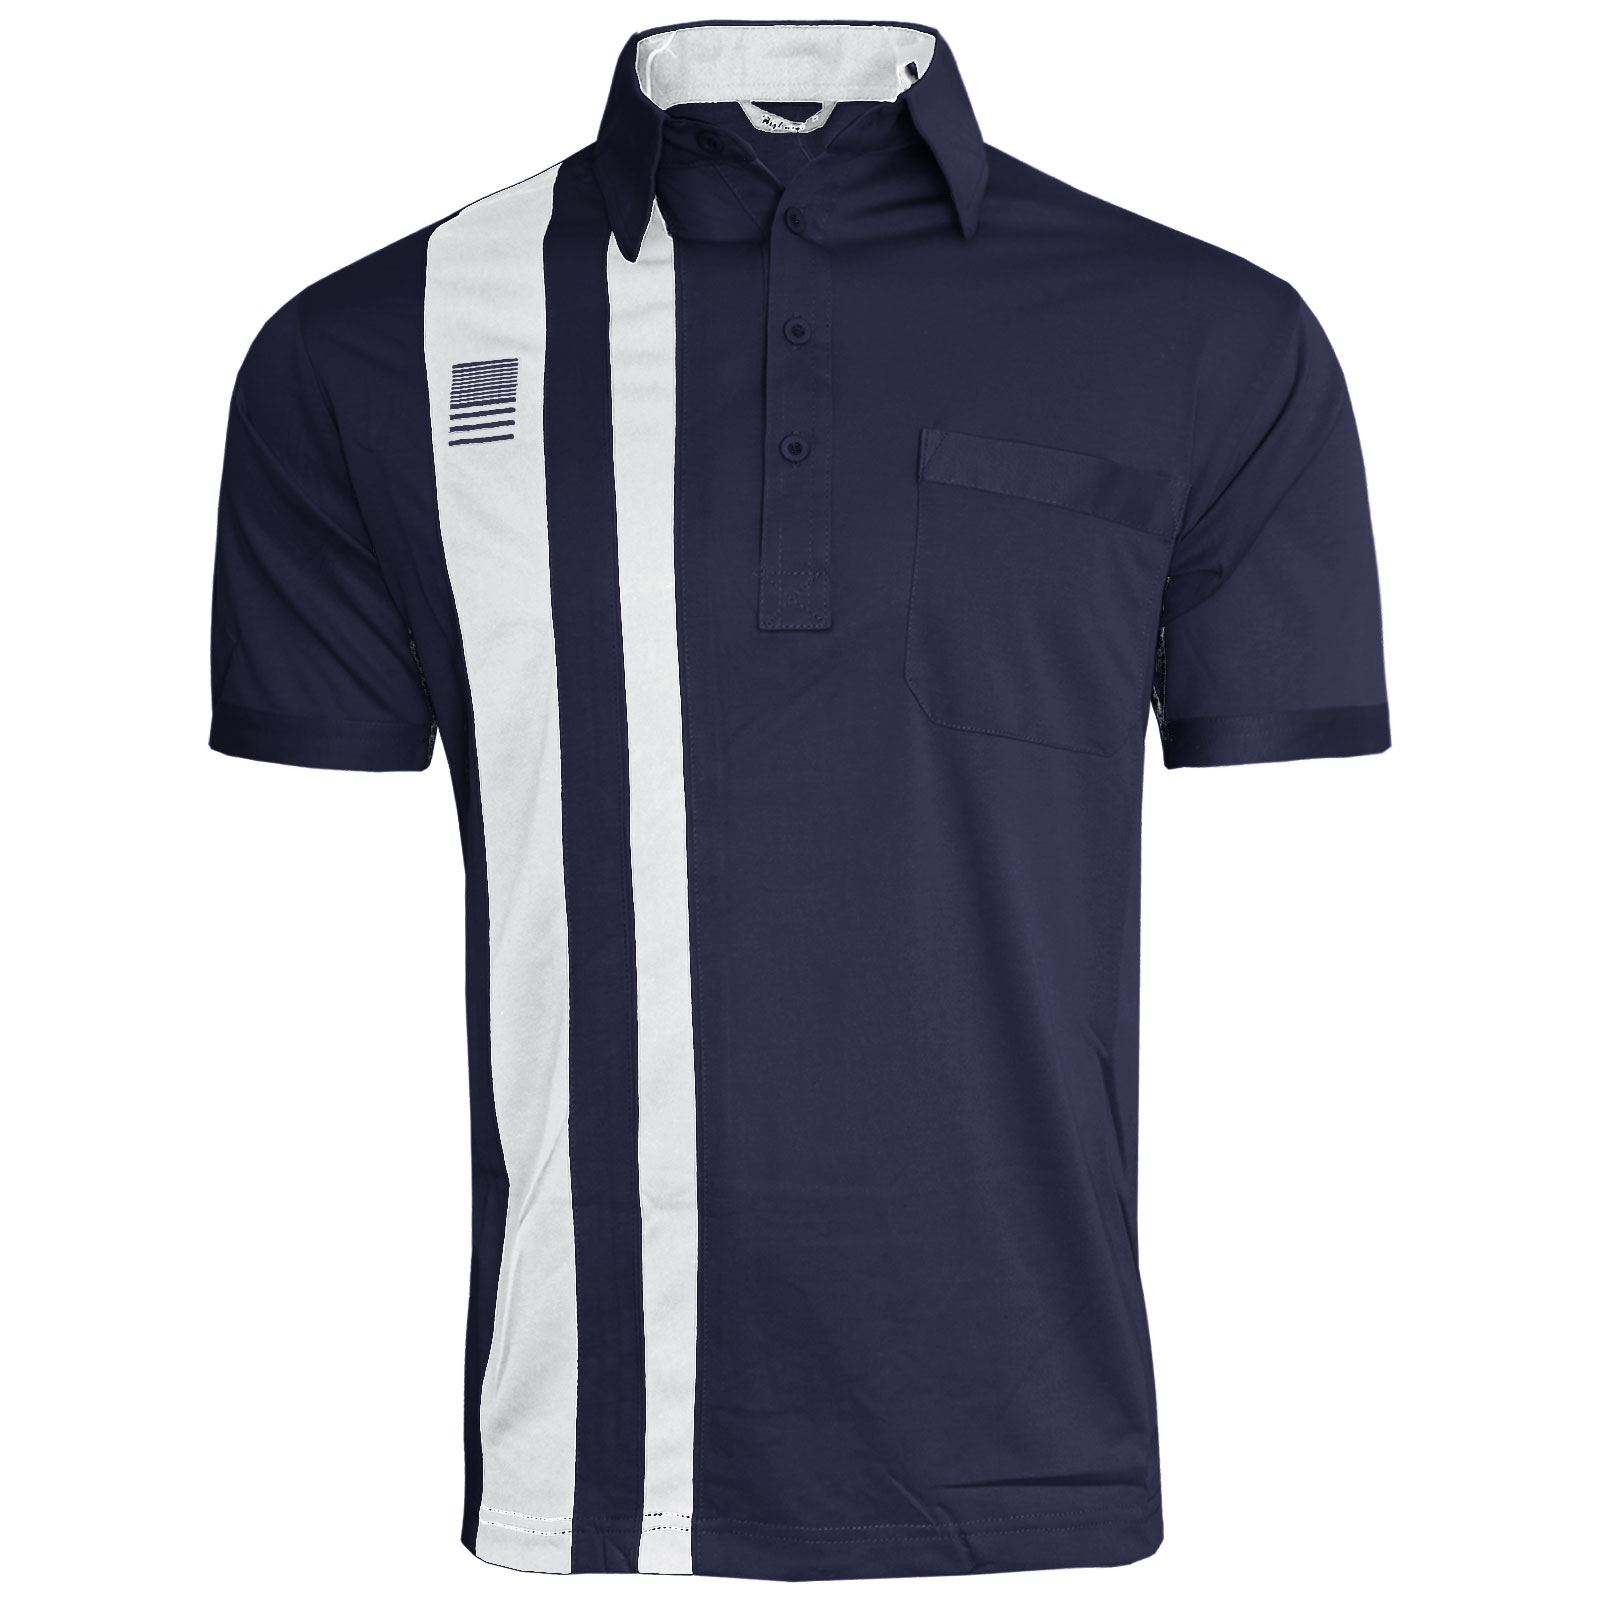 Mens Short Sleeve Plain Design Polo Shirt T Shirt Top